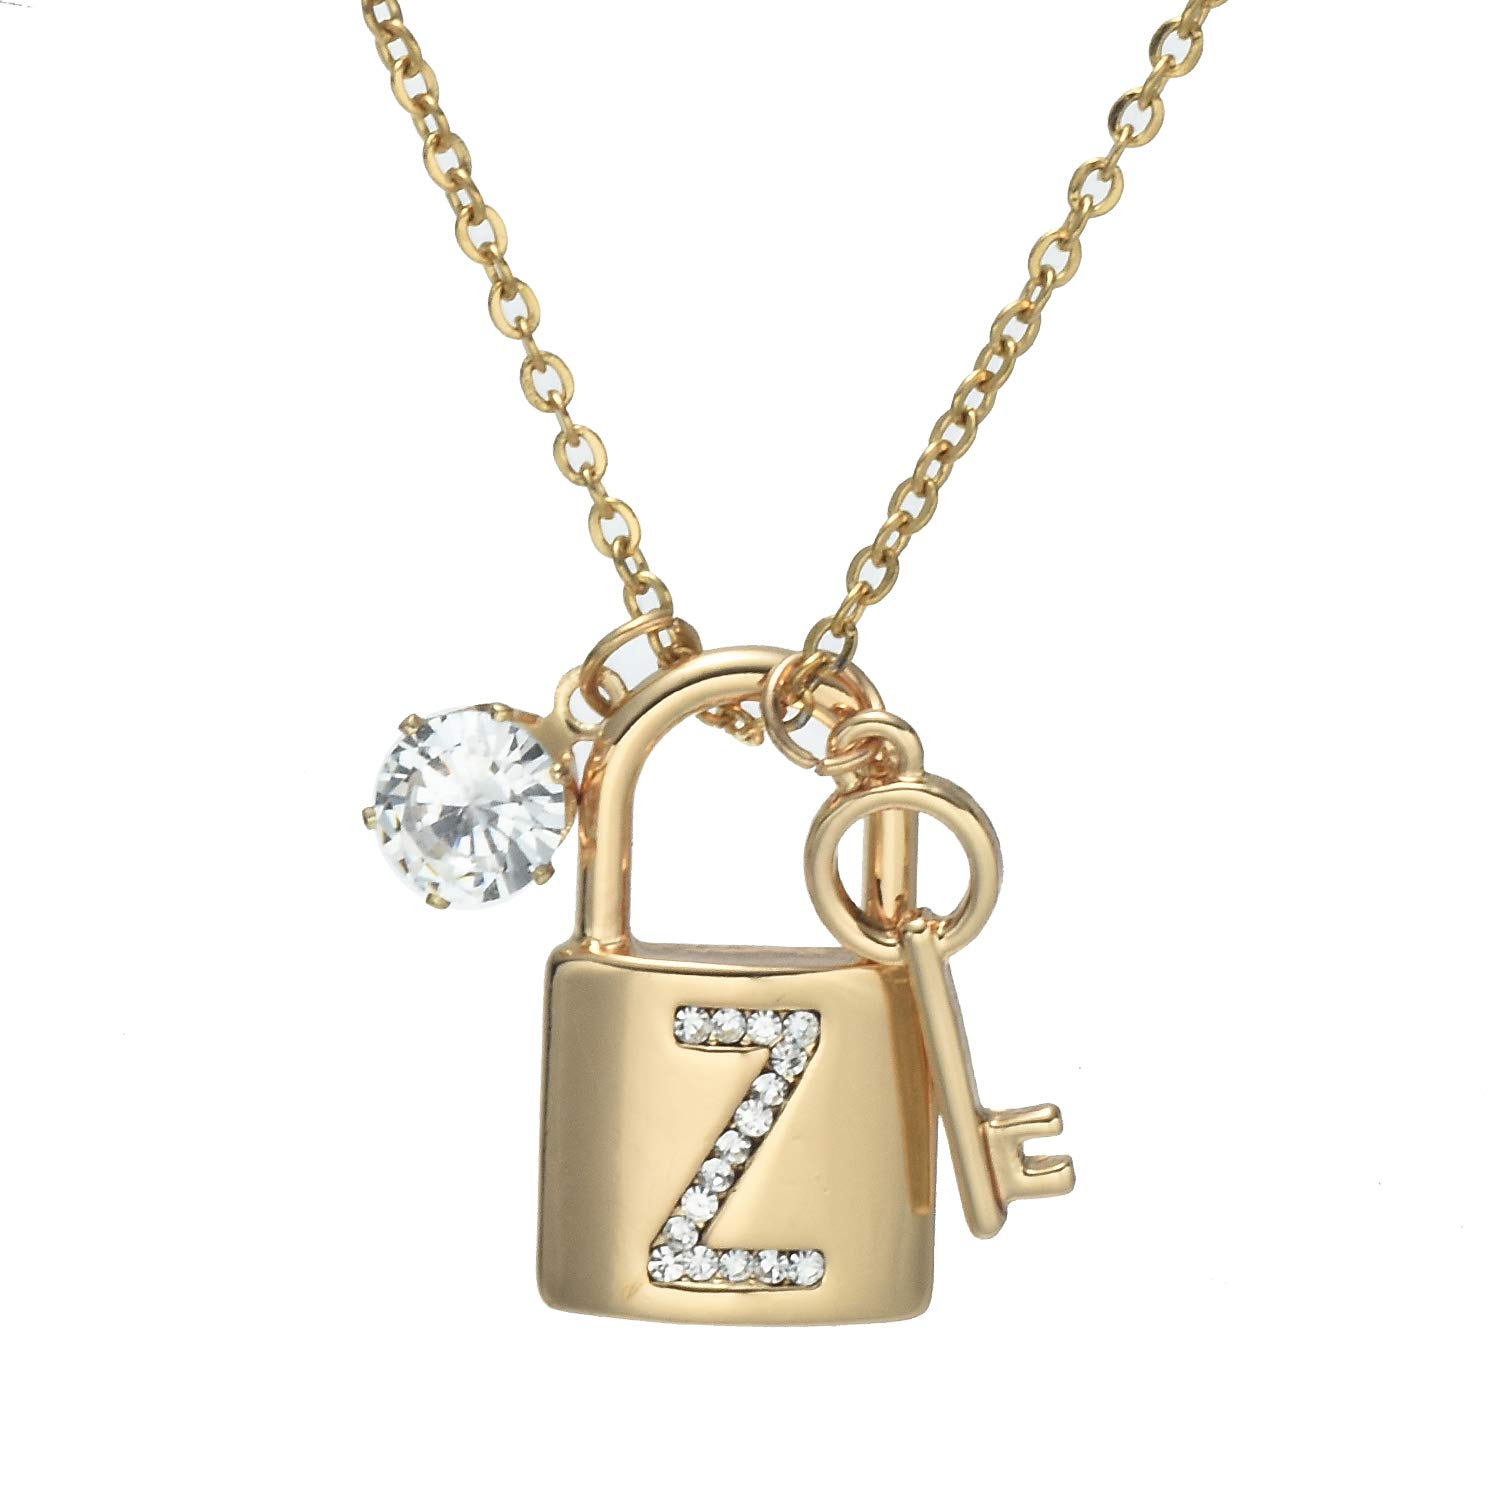 Onnea Fashion Gold Plated Letter Pendant Necklace A-Z Initial Necklace with Rhinestone Lock and Key Gift for Women Girls